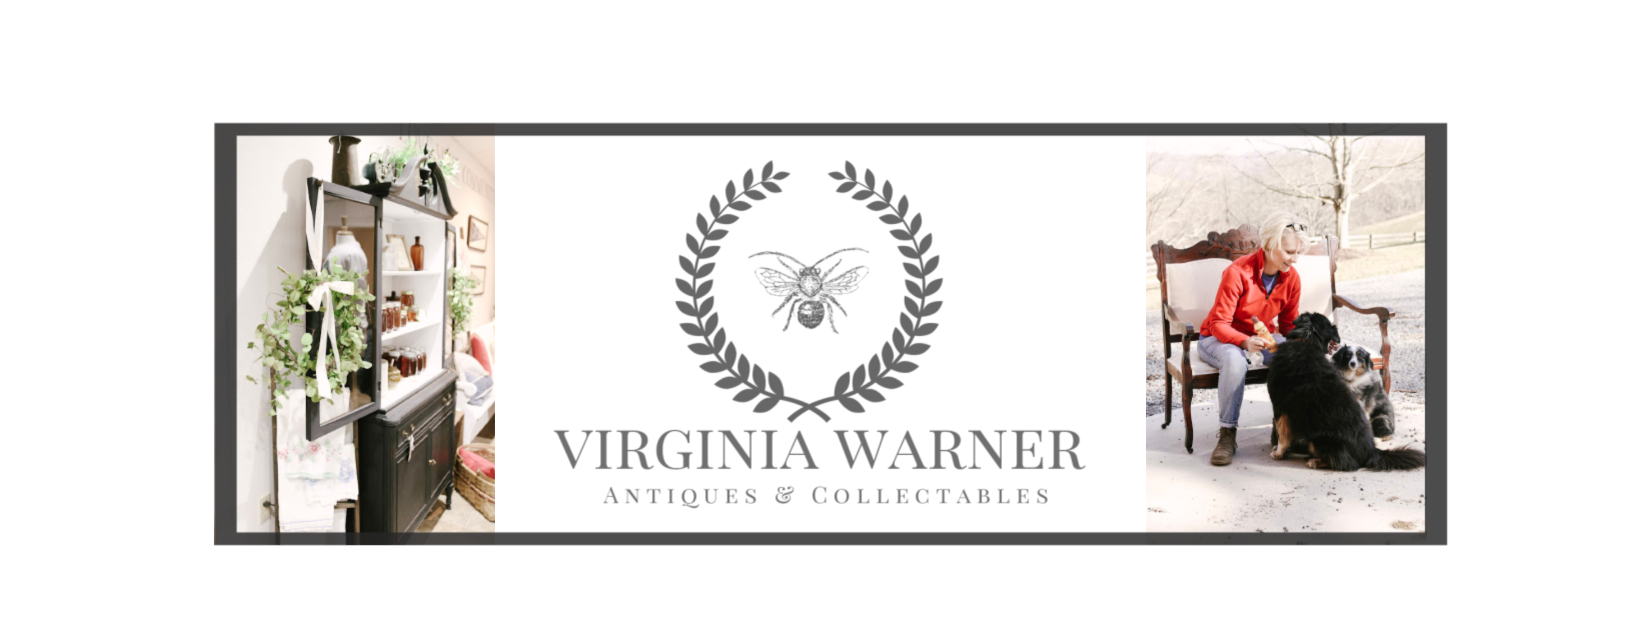 Virginia Warner Antiques and Collect